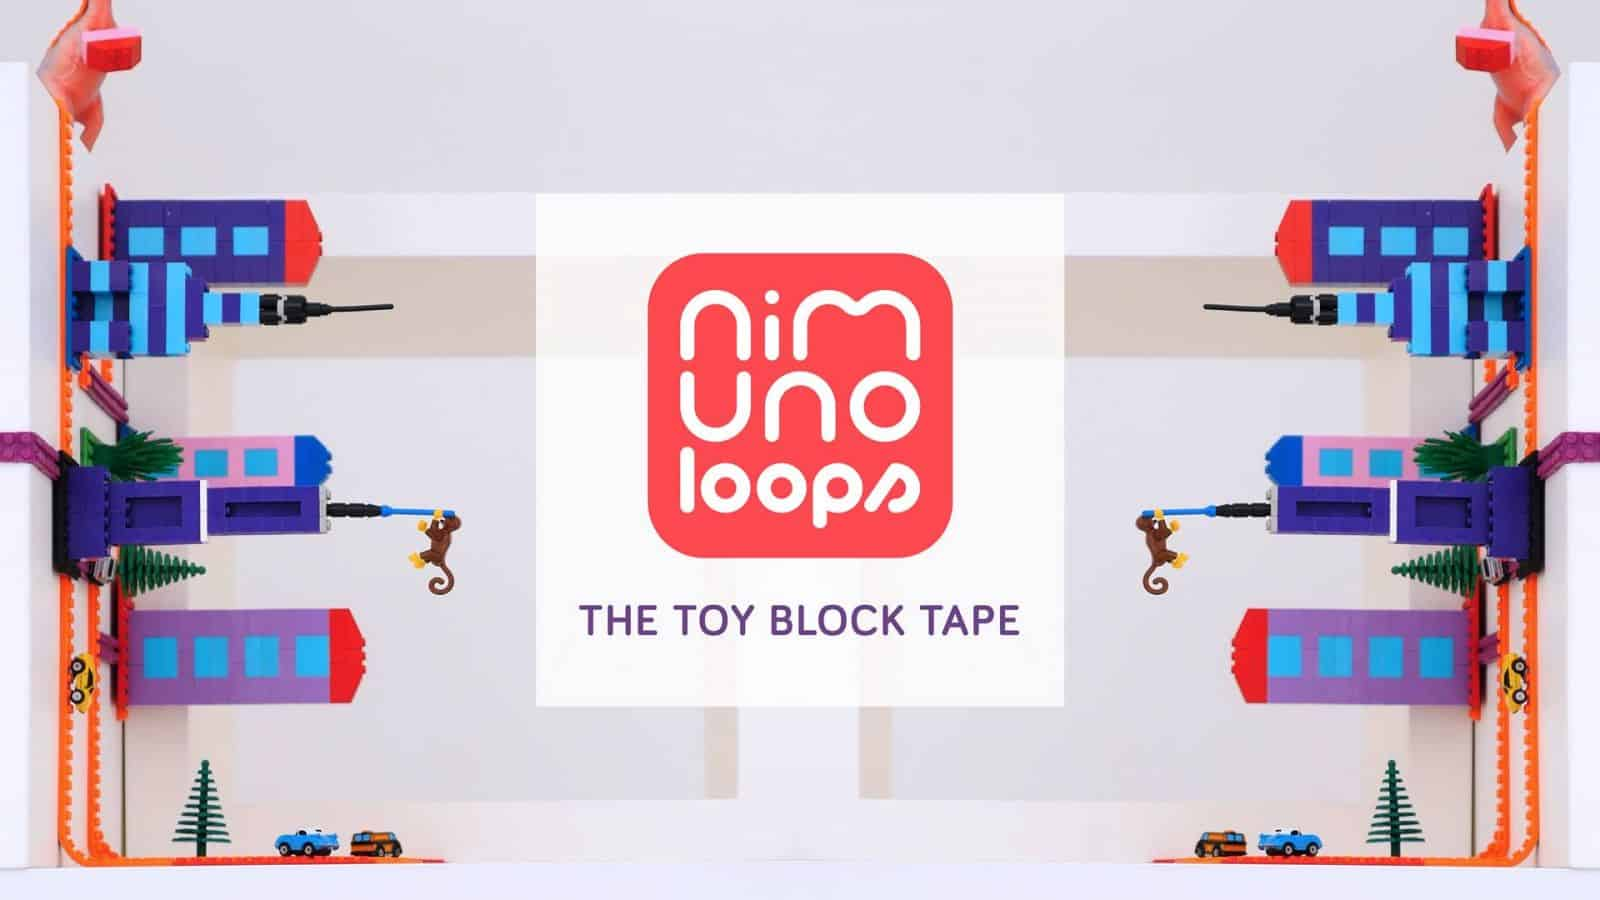 Innovative Lego Tape Changes How You Play With Toy Bricks